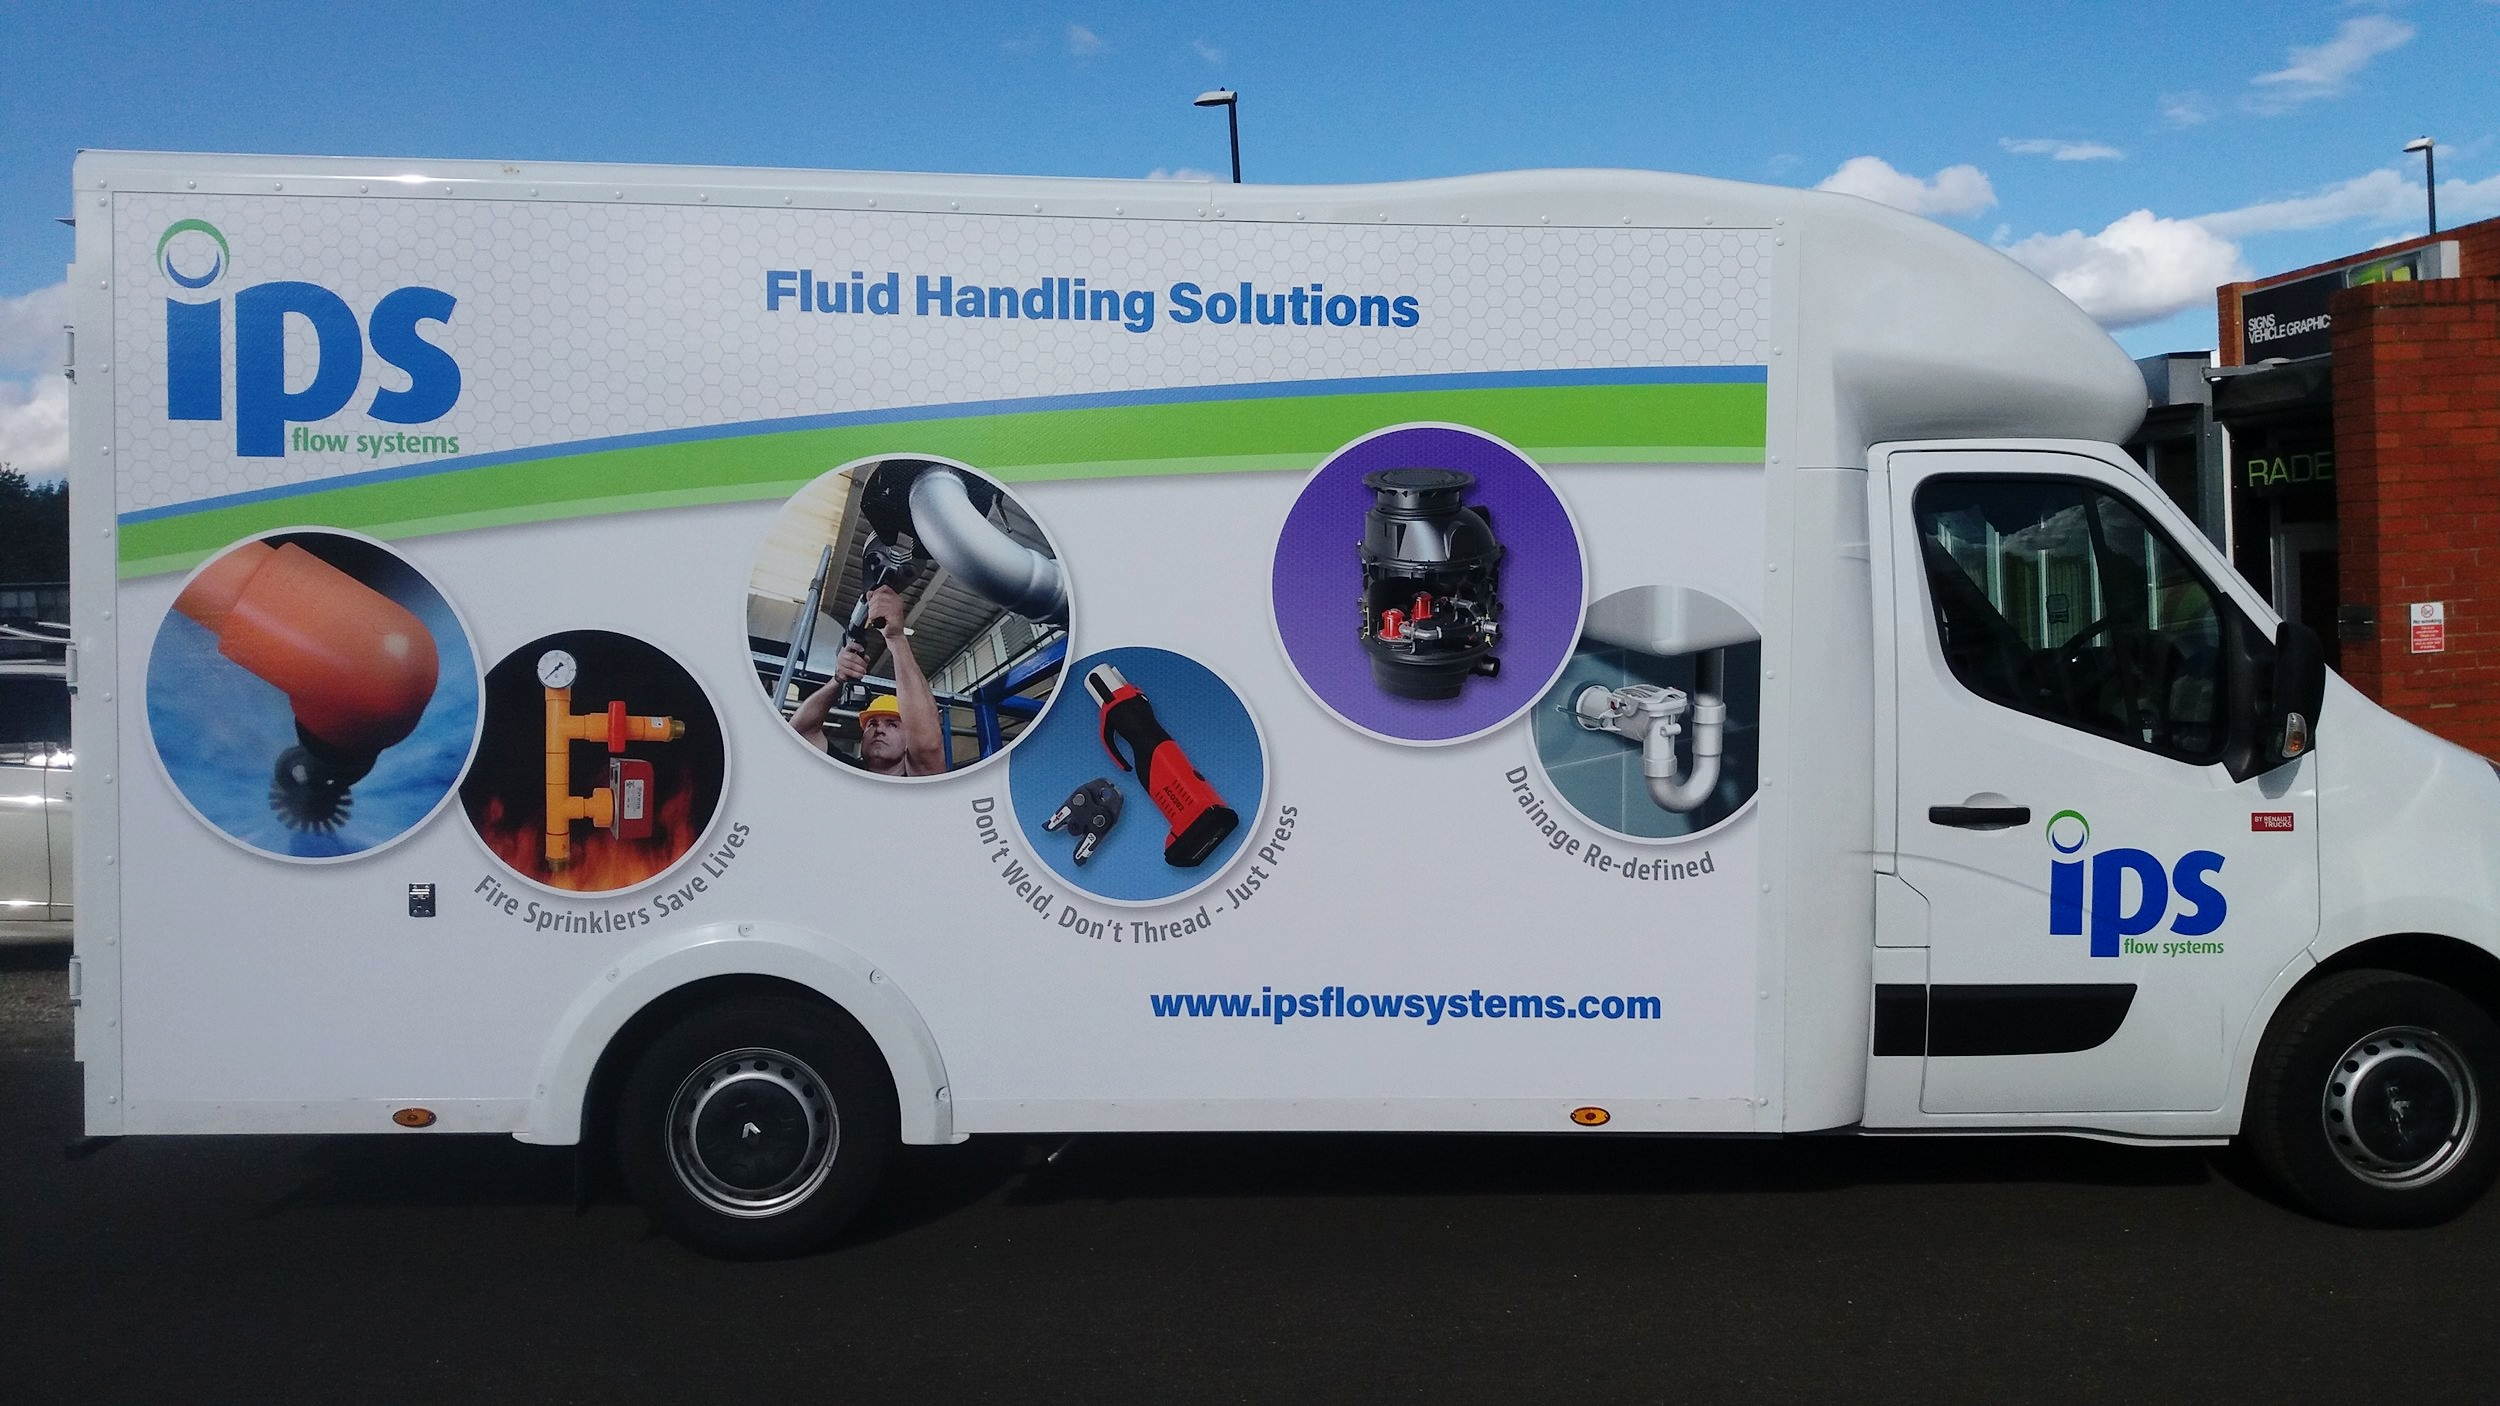 IPS FLOW SYSTEMS VAN   Large format digital print installed on both sides and the rear, with print and cut logos on both side doors.